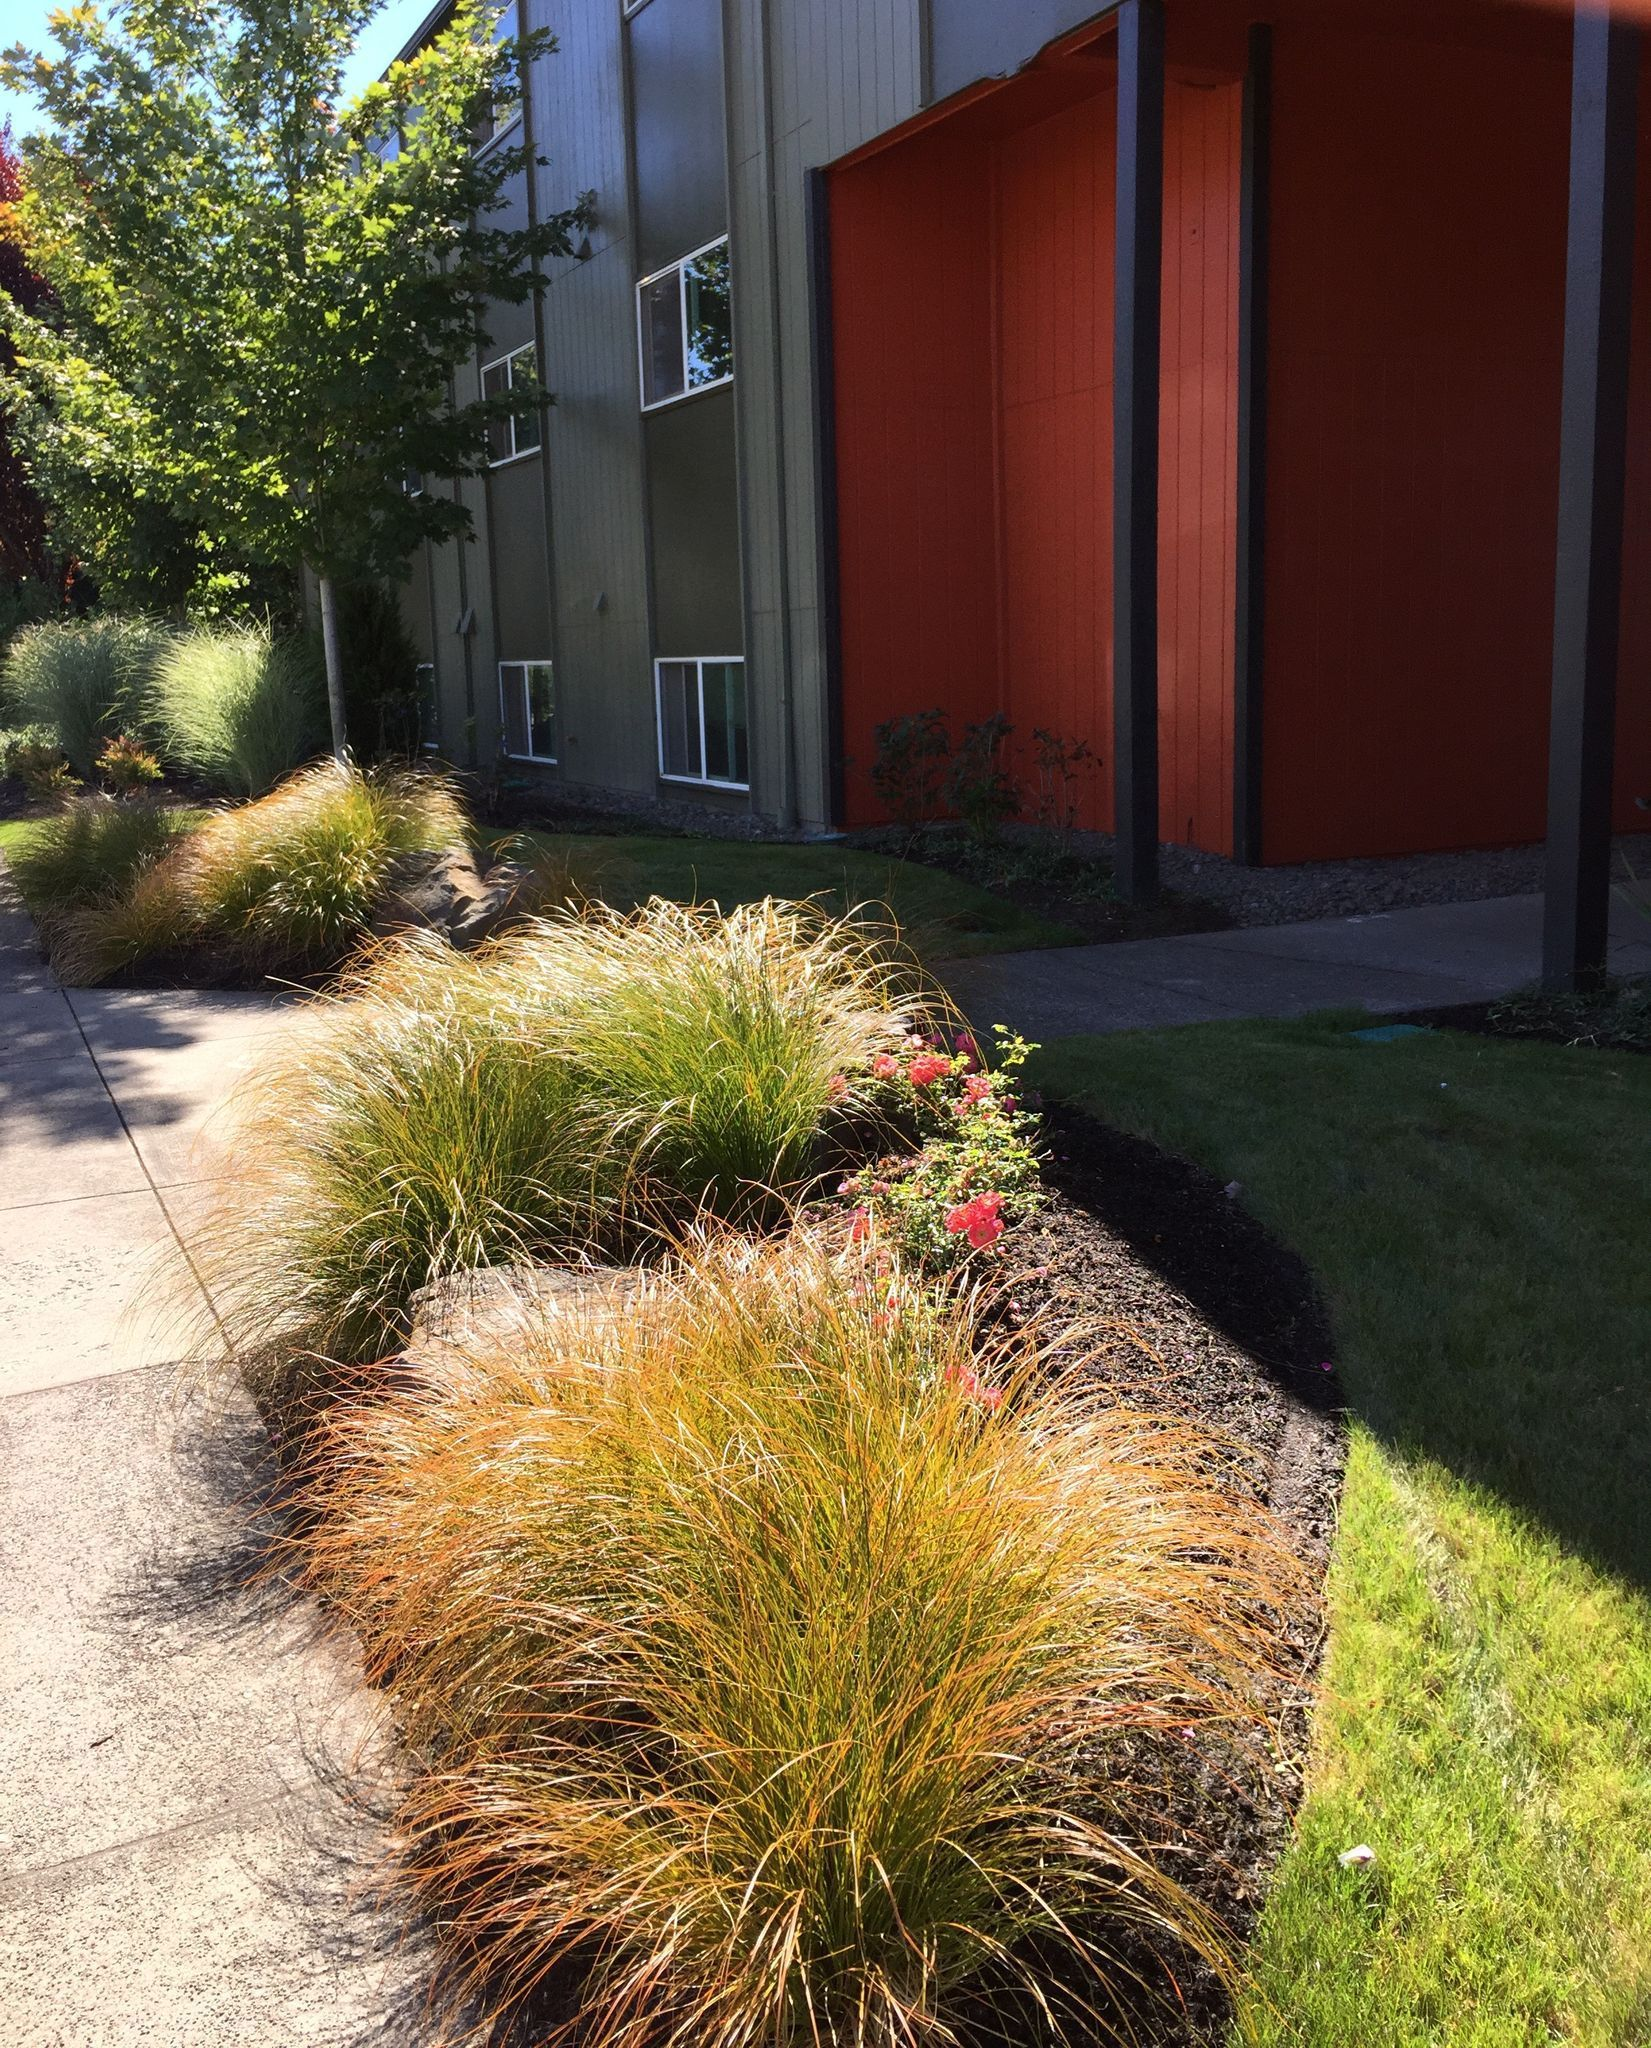 As seen on #RedBird design tv today (JK) aka annual job site curating care check: orange #sedge blowing beautifully in #fall drift and begins the fantastical #autumn #foliage dance that will happen at the front #defensive ('cause their college students) #plantingdesign entry of this student housing property. Next up will be the turn of the maples against the olive green tones of the building. #cantwait Entire palette is in keeping with #OSU color branding including the bold orange building…